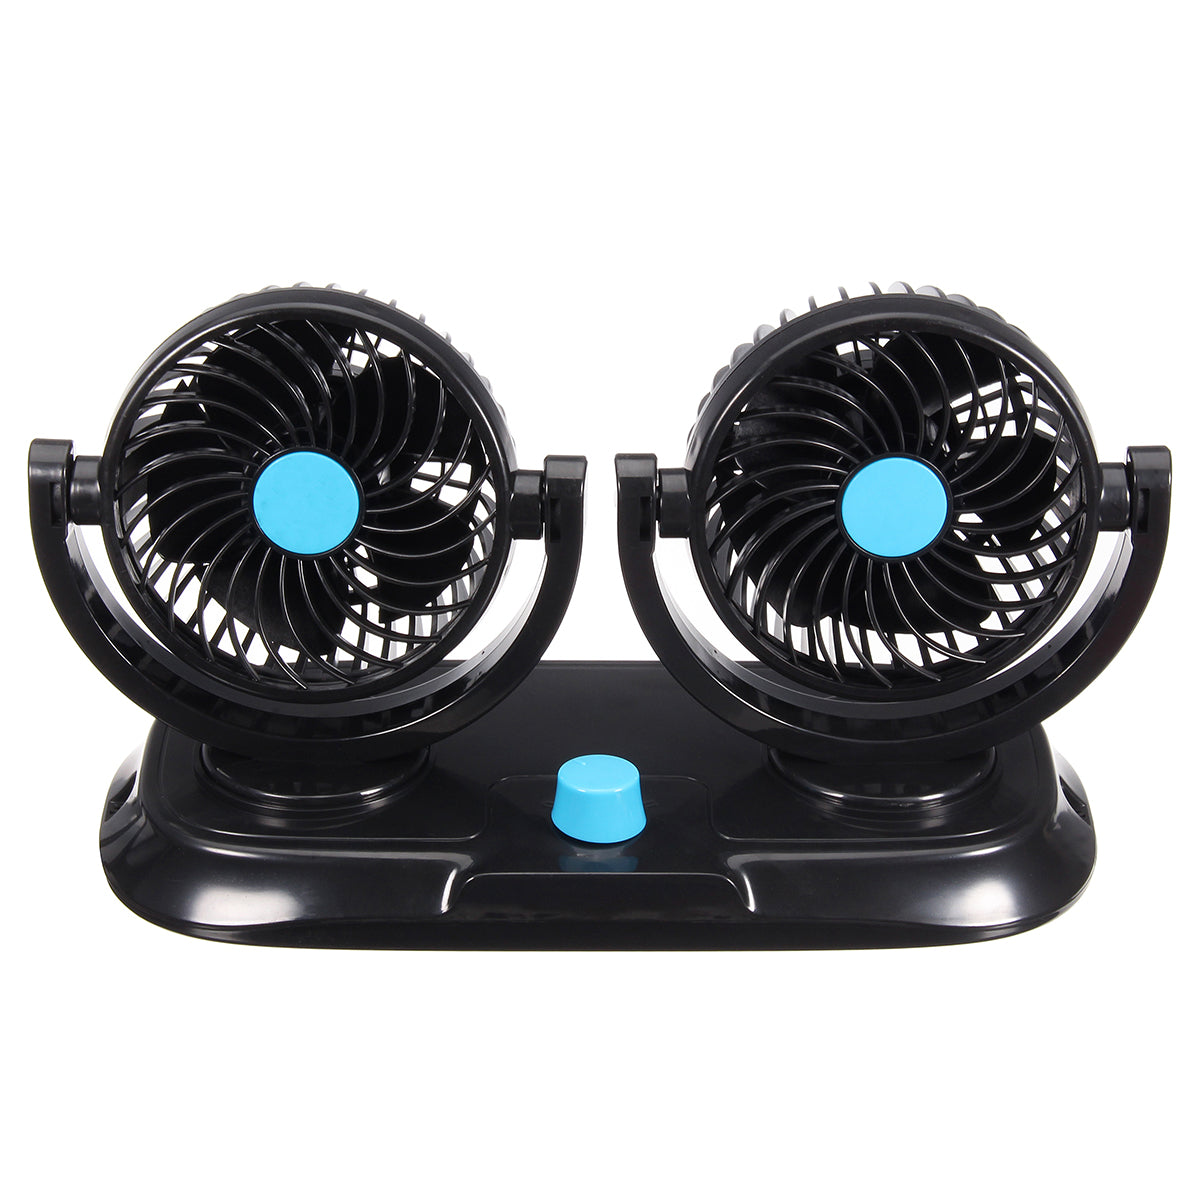 Dual Adjustable 360 Degrees Mini Oscillating Fan